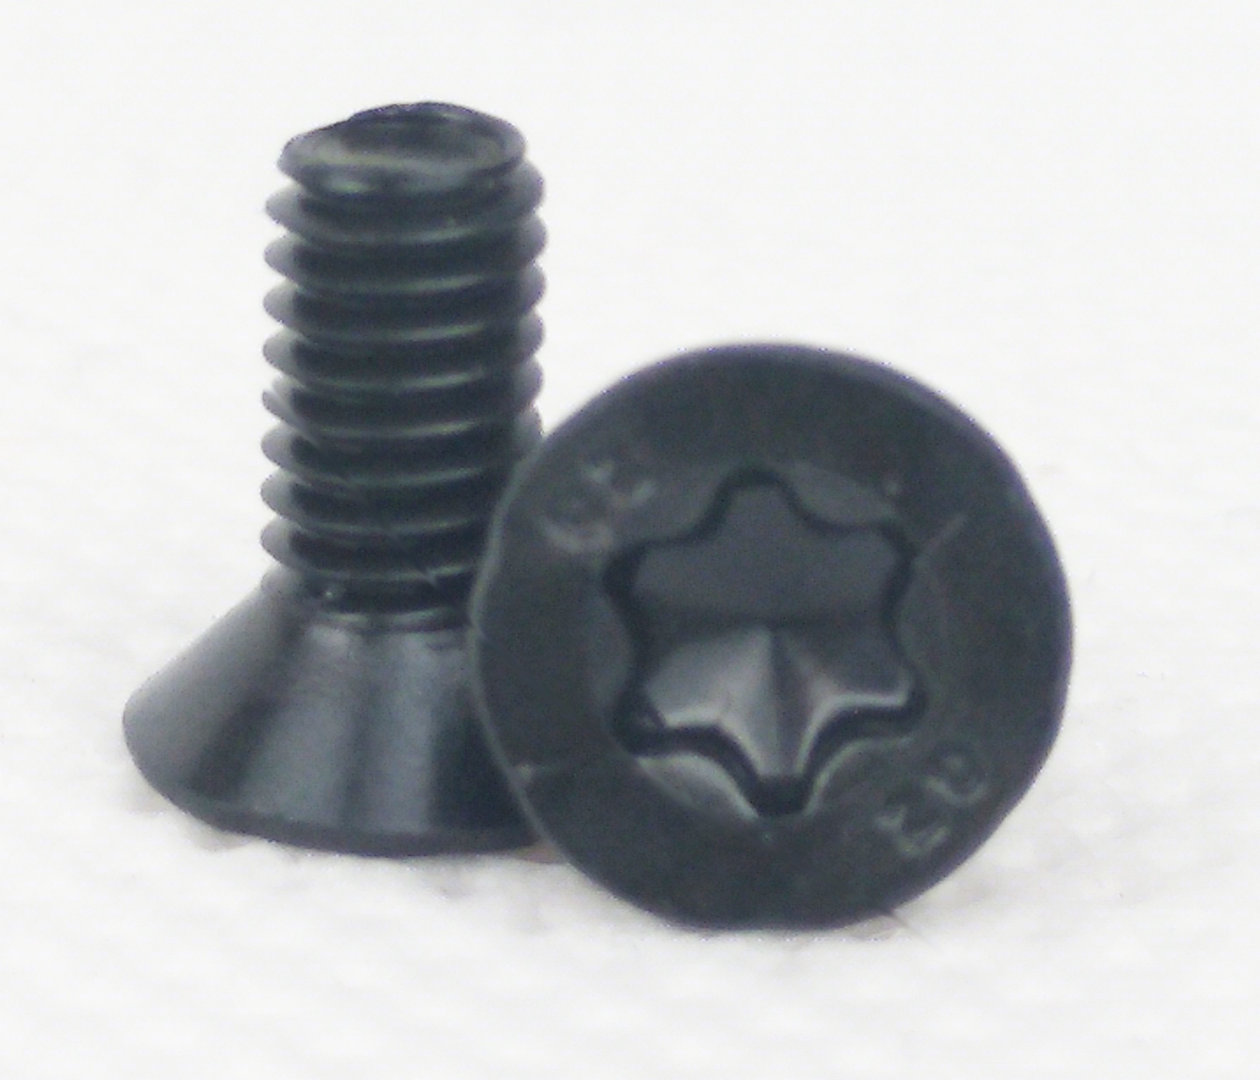 Grip Screw for CZ Shadow Set of 2